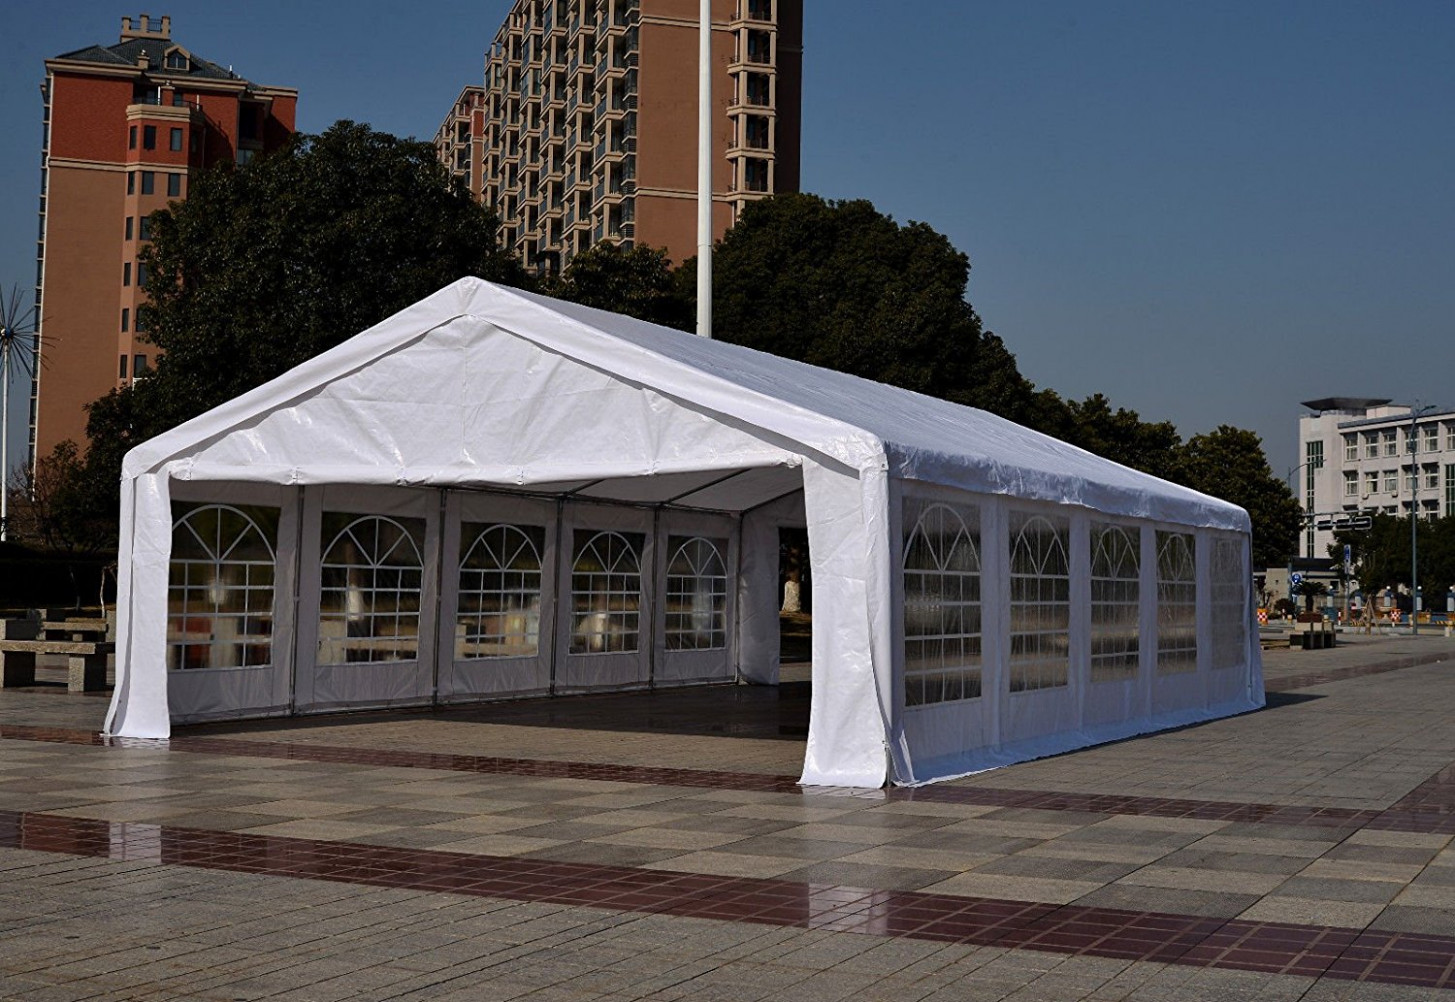 Cheap Tent Carport Garage, find Tent Carport Garage deals on line at Alibaba.com